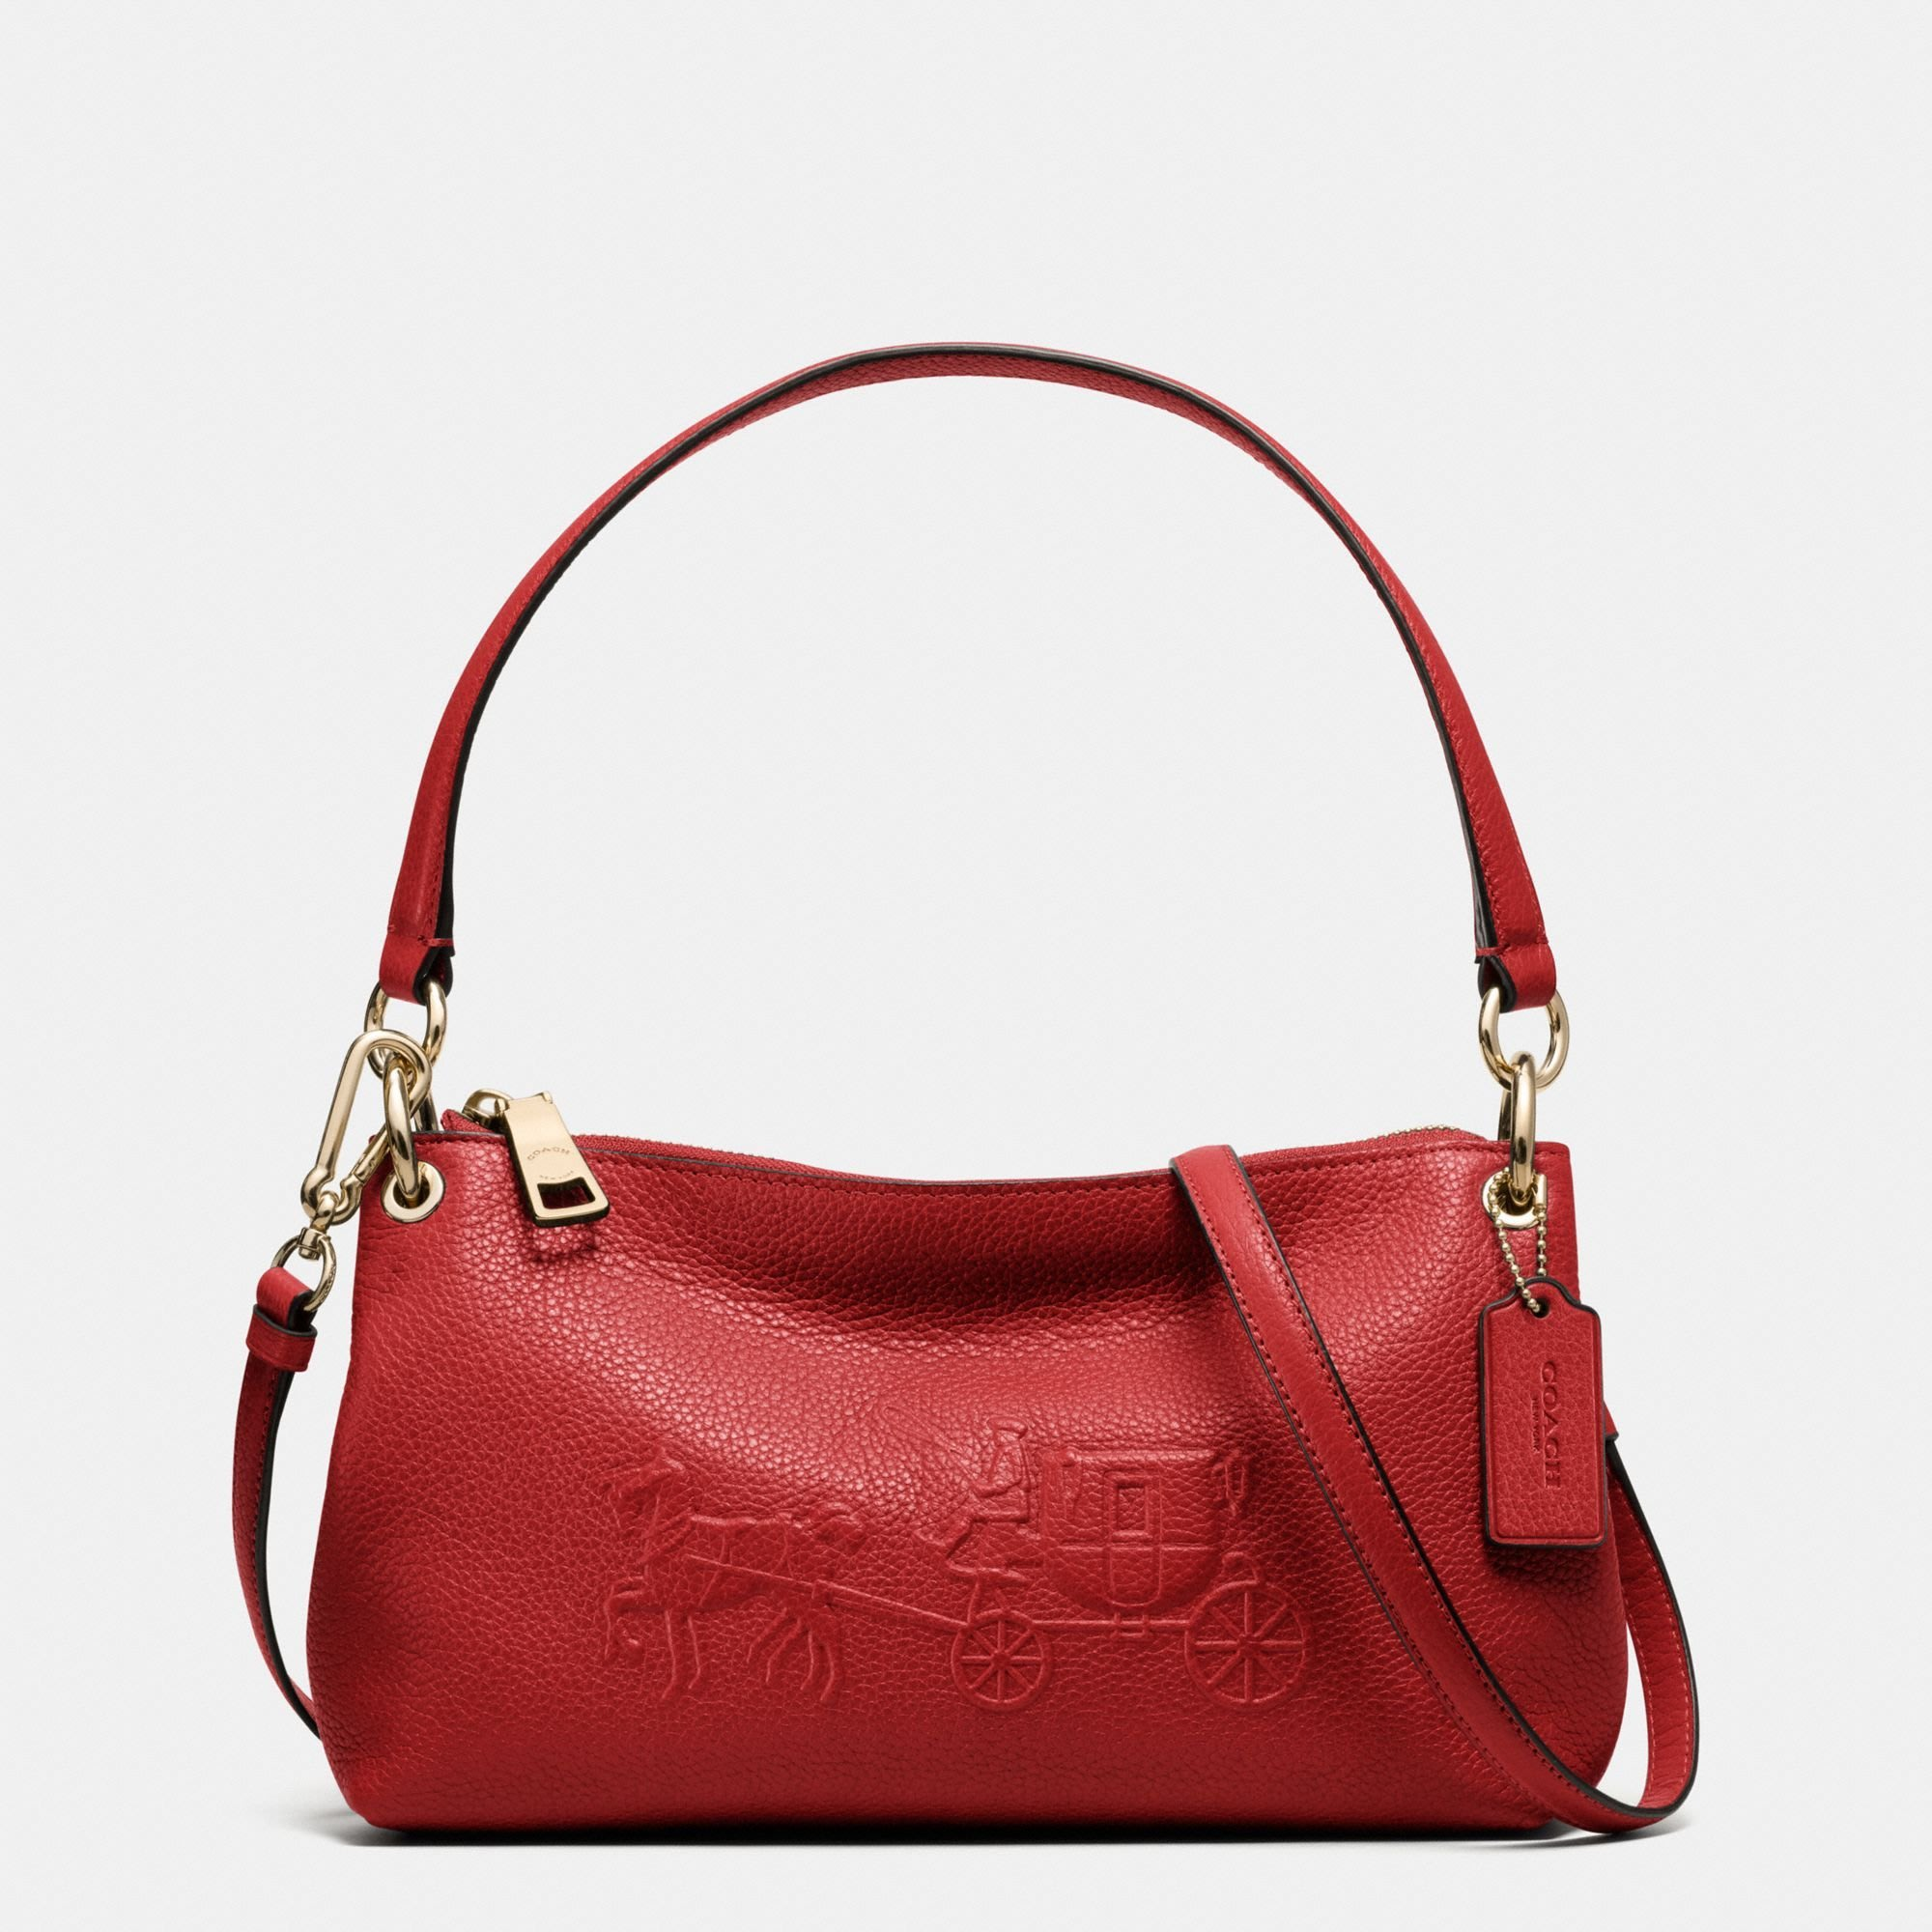 Coco小舖 COACH 33521 EMBOSSED HORSE AND CARRIAGE CHARLEY 紅色